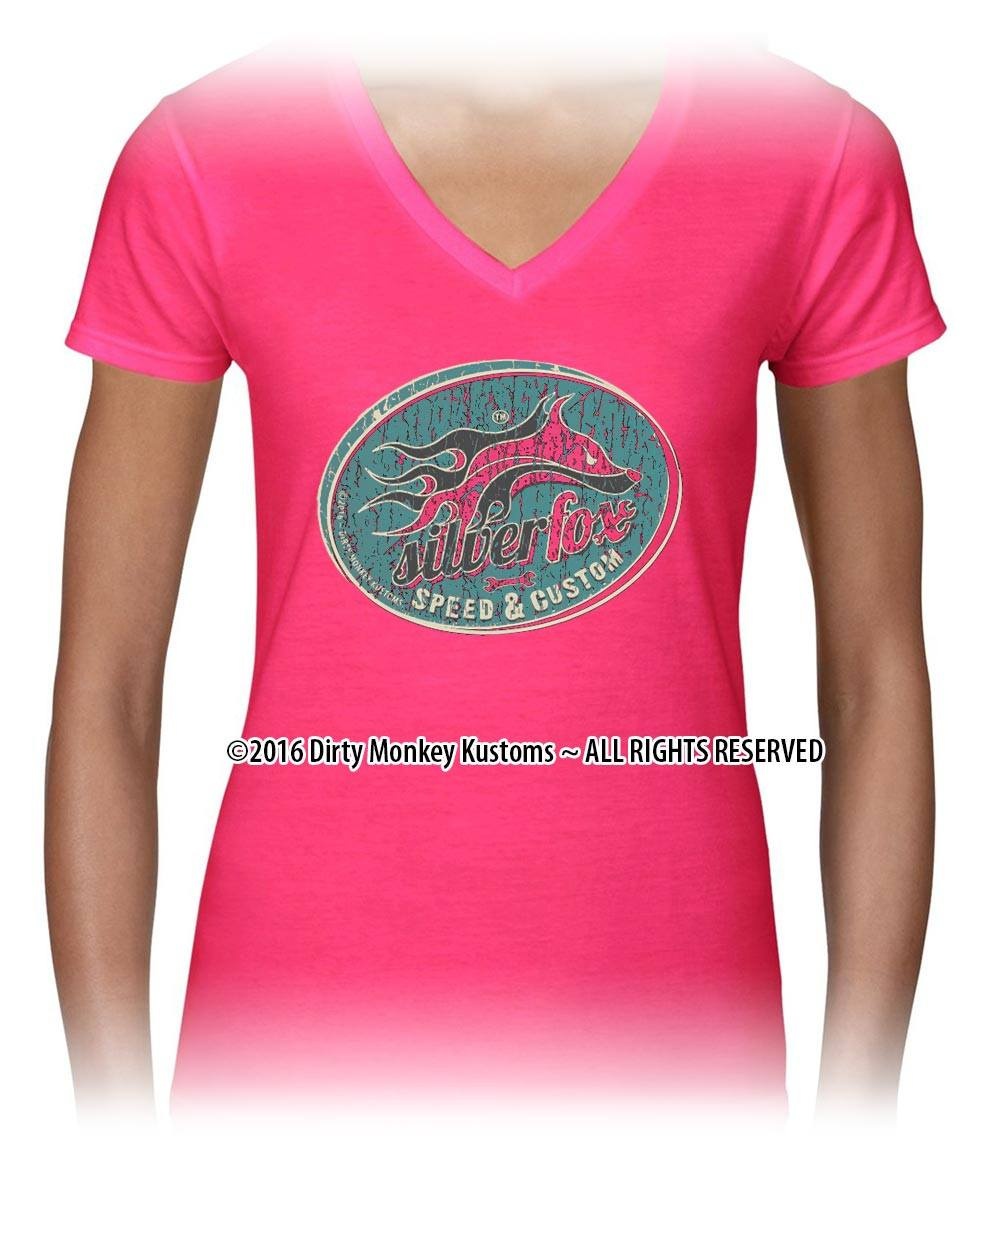 Ladies hot rodder tshirt - Silver Fox design